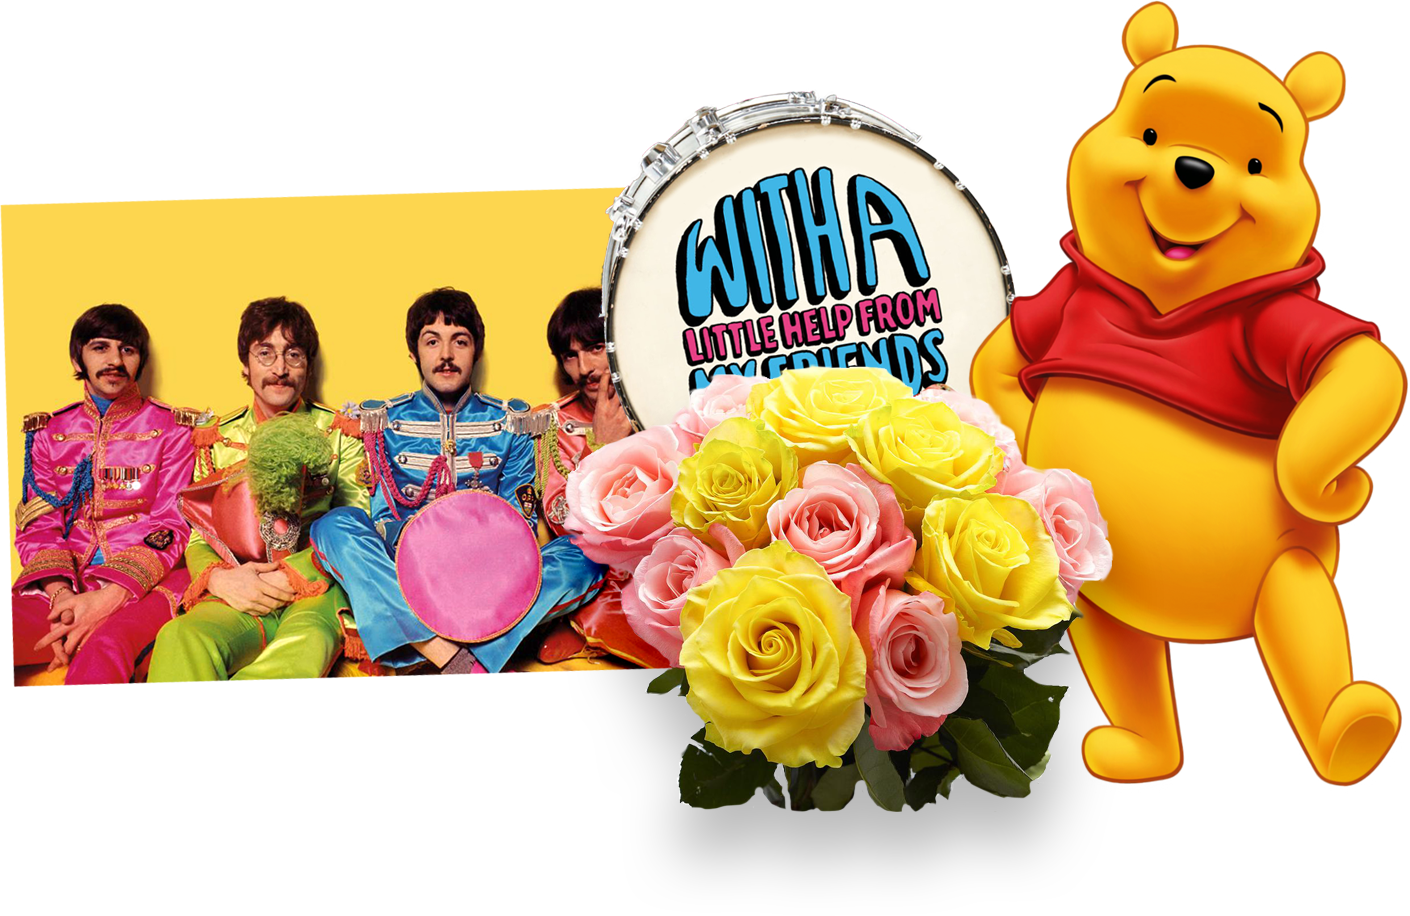 Beatles and Winnie the Pooh